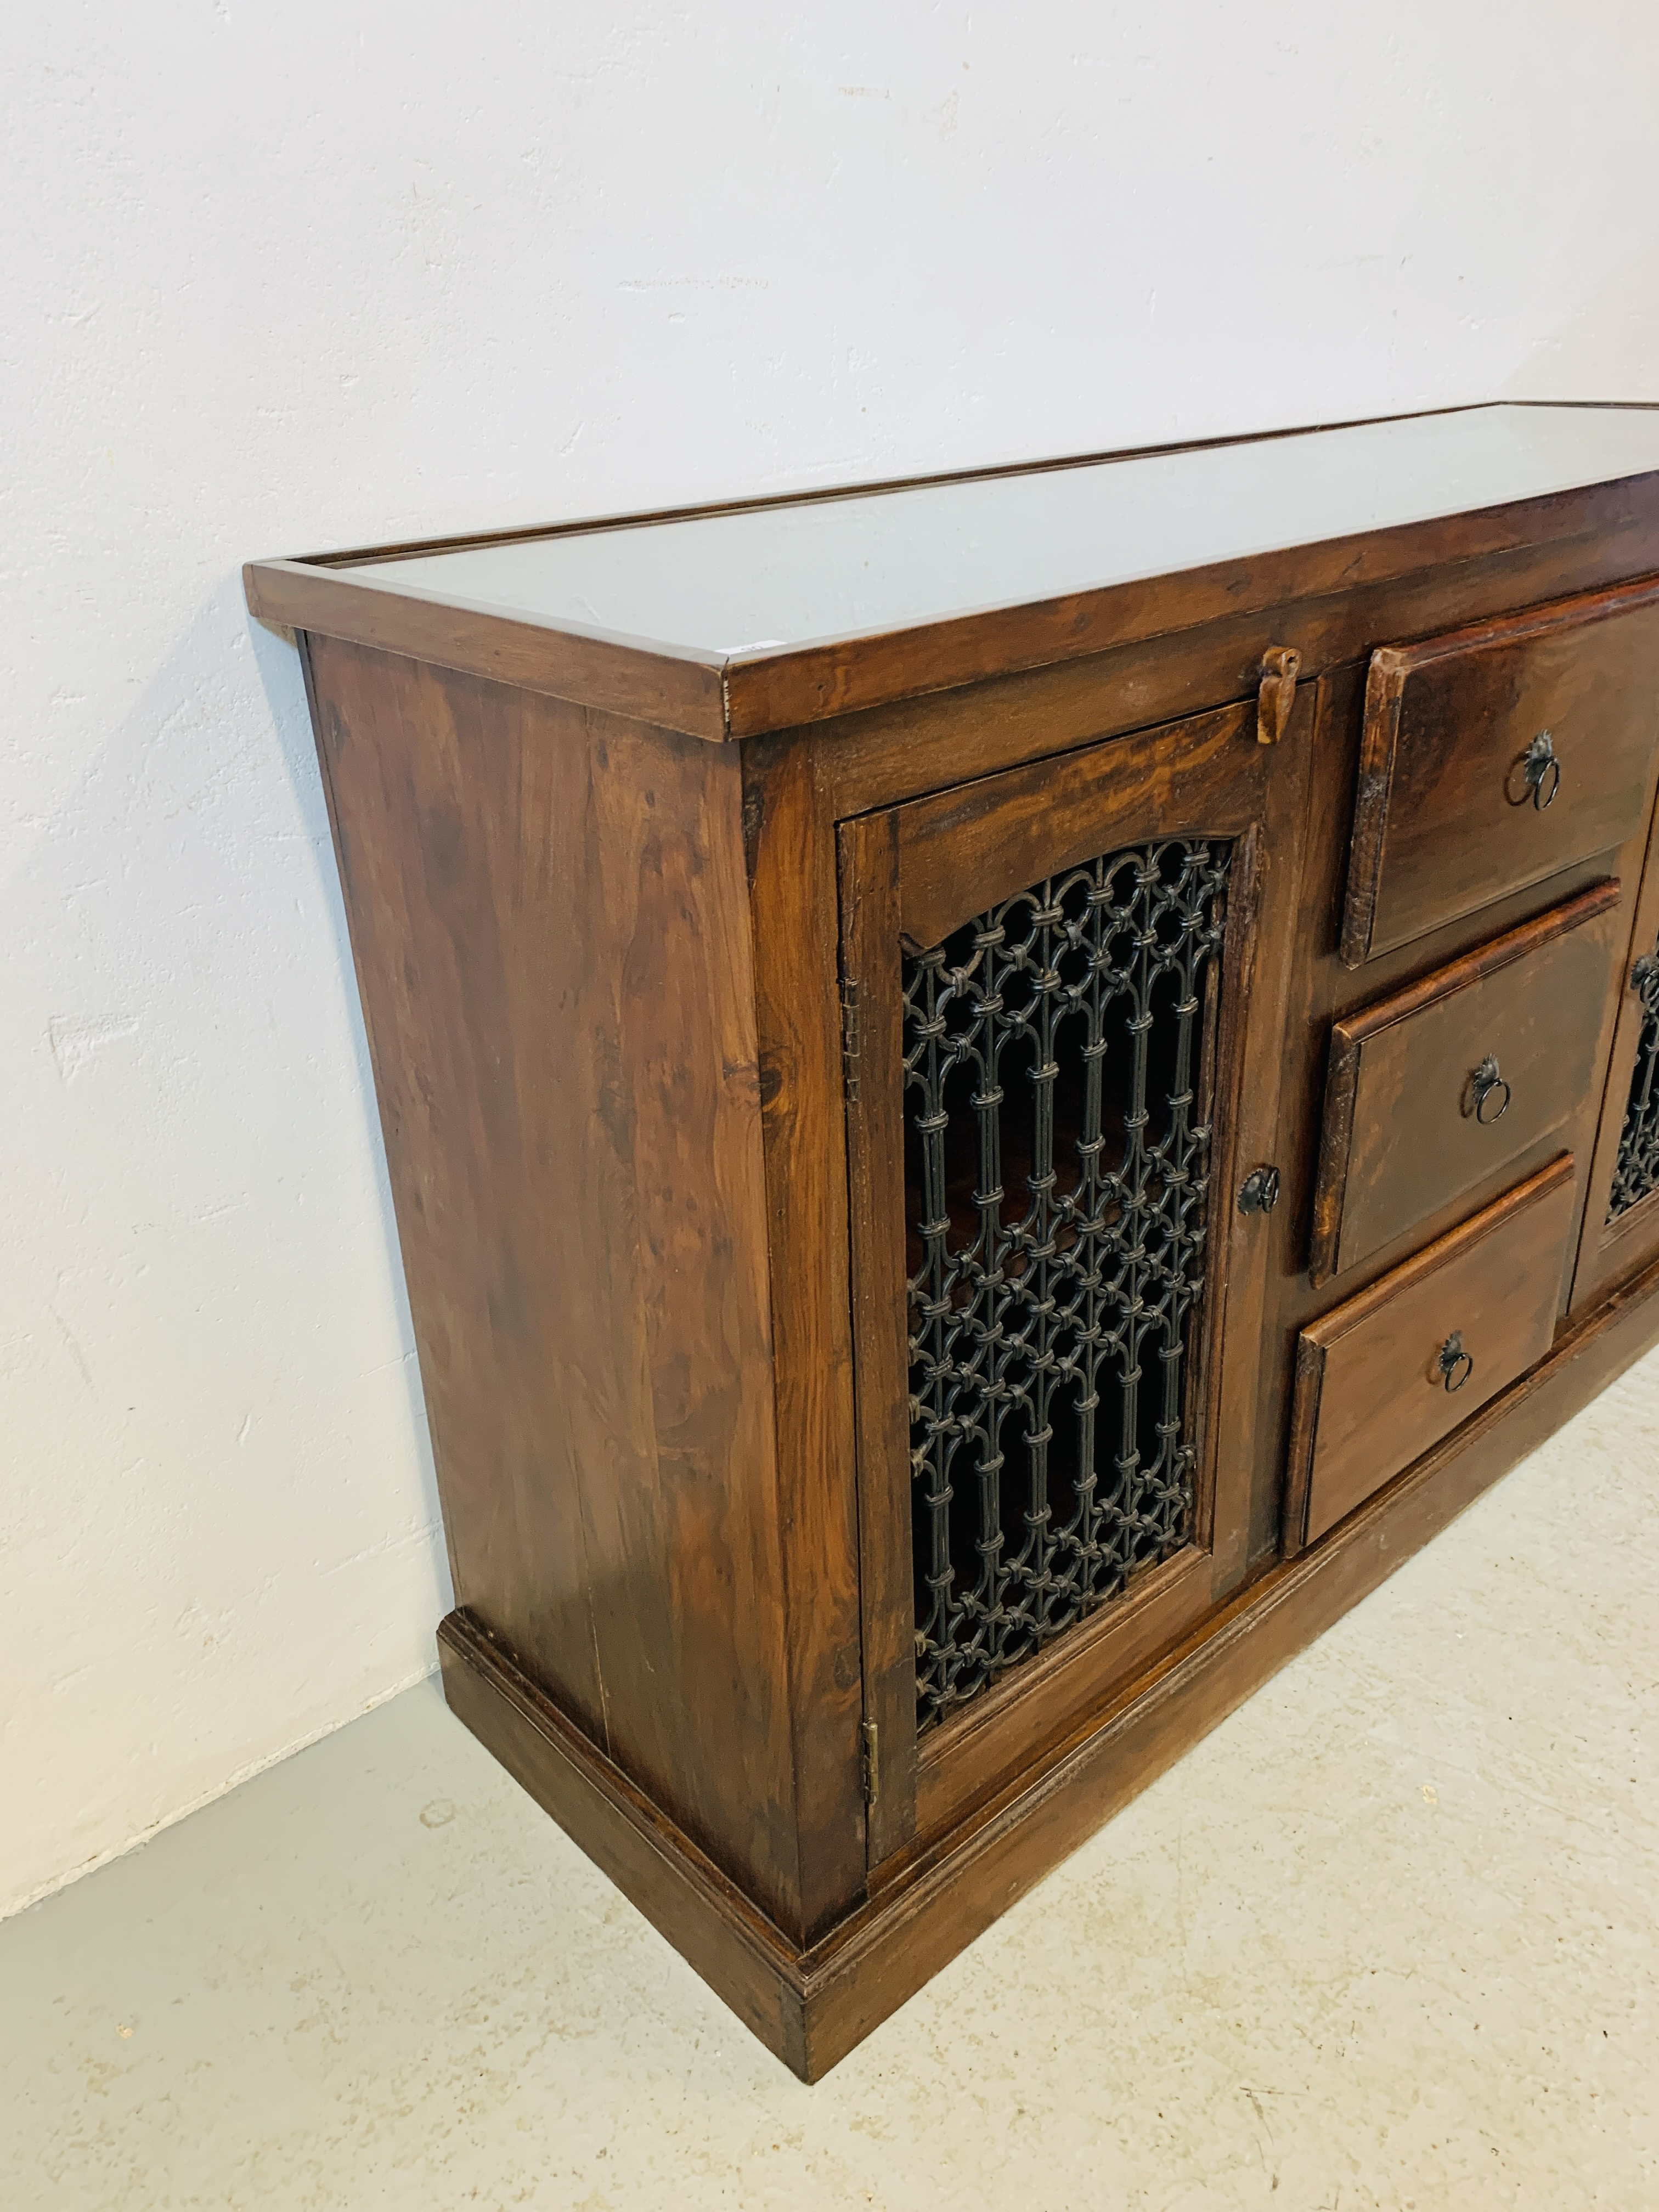 A RUSTIC HARDWOOD COUNTRY & EASTERN STYLE DRESSER BASE, - Image 5 of 9